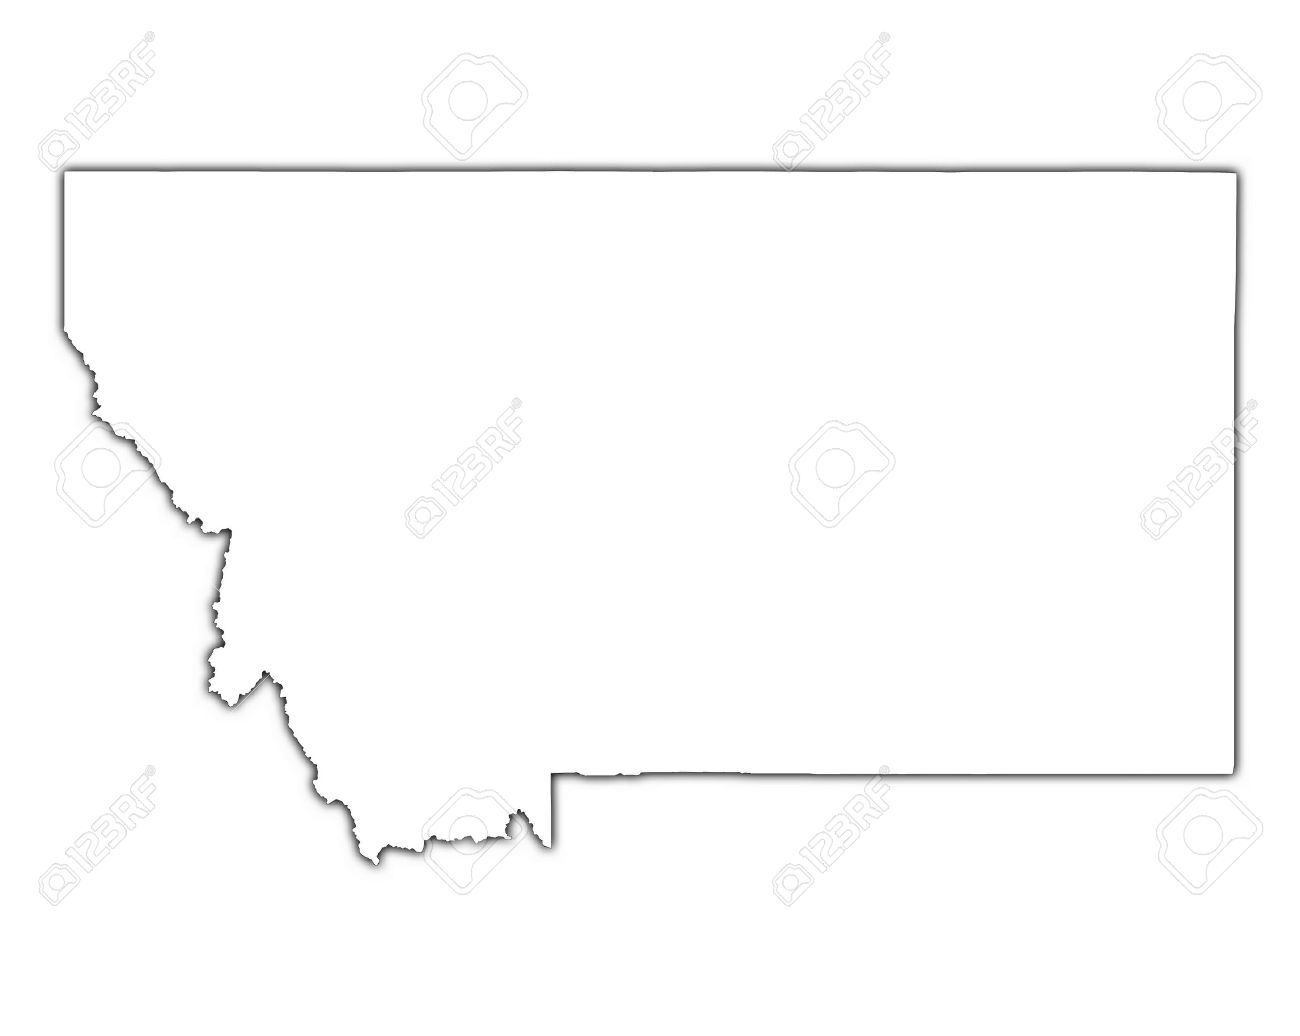 Usa Blank Map Broncos Stadium Map - Montana blank physical map